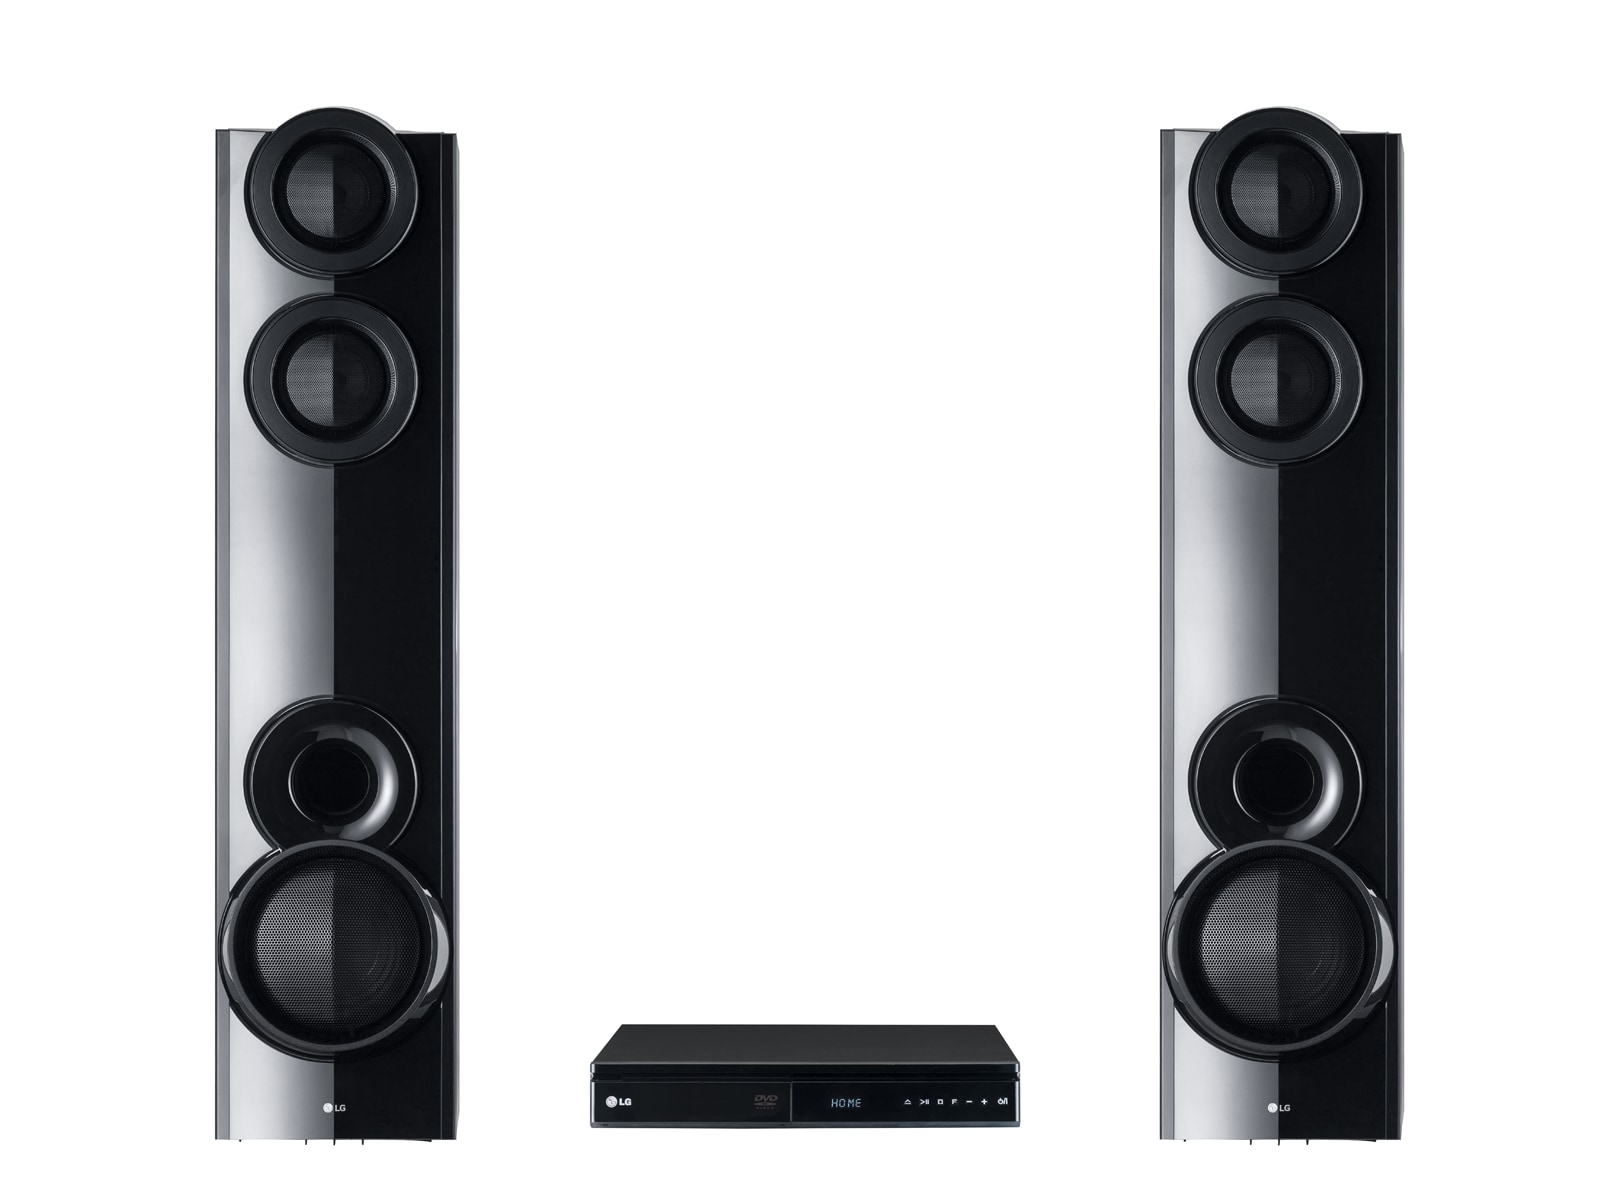 Lg Lhd675 42 Ch Dvd Home Theatre System L Electronics Africa Theater Subwoofer Wiring Diagram